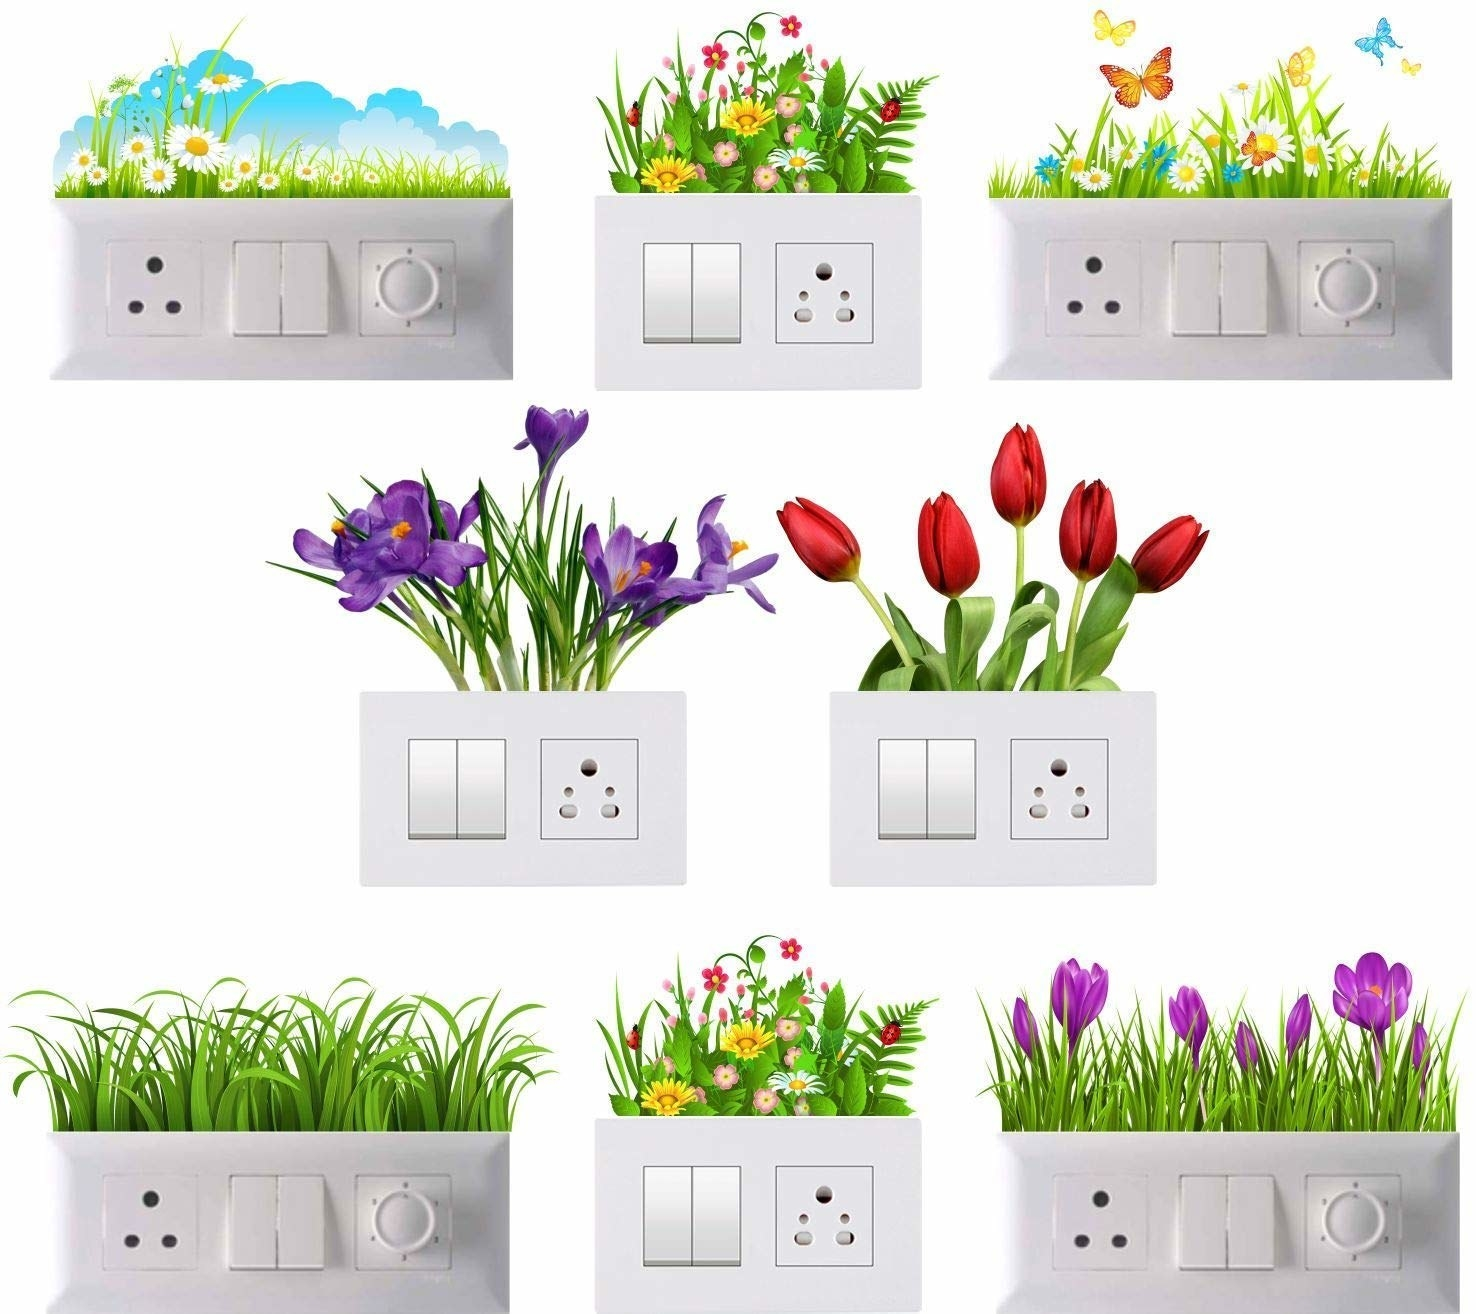 Different types of flower stickers attached above switchboards.